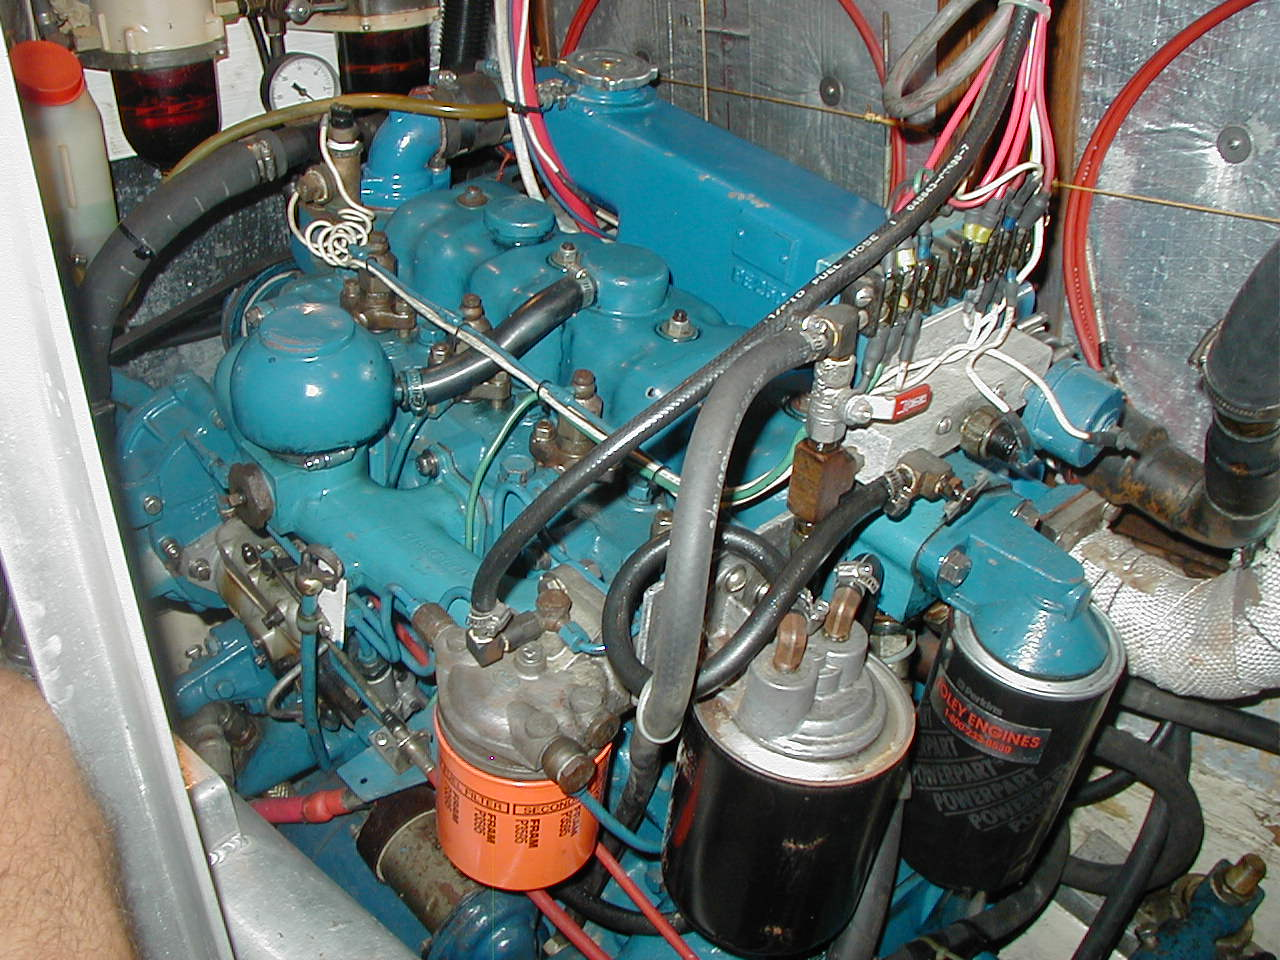 S V Soggy Paws Csy 44 Engine And Drive Train Boat Fuel Filters Spin On Filter Adapter Easy Access Electrical Connector Block Amsoil Bypass System The Oil Sensor Mounting With Sensors A